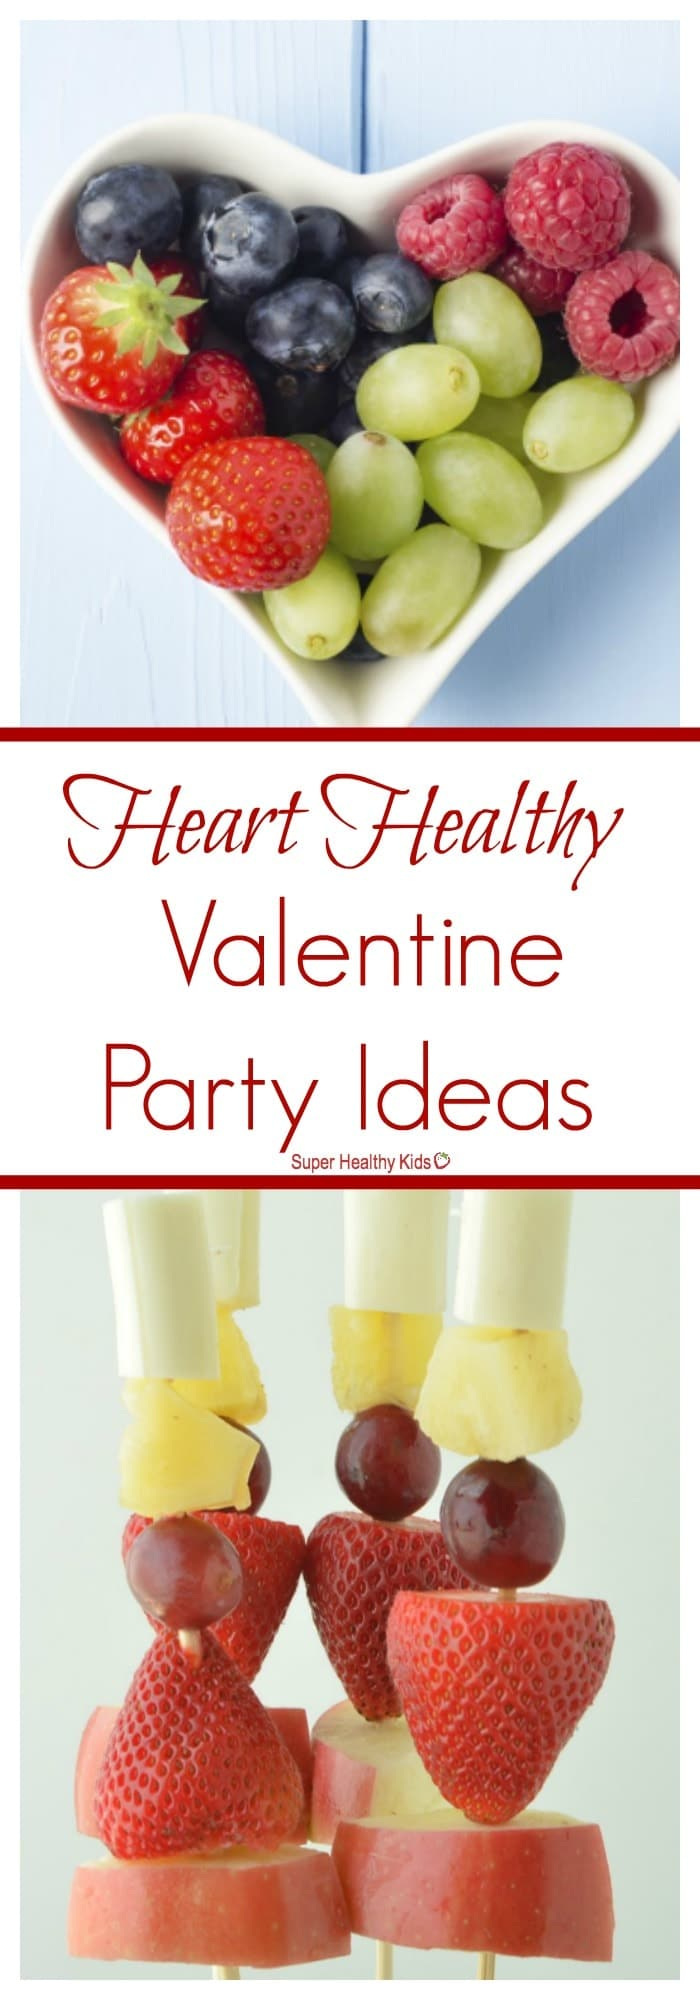 BIRTHDAY/PARTIES. Heart Healthy Valentine Party Ideas. Healthy ways to celebrate Valentine's day! https://www.superhealthykids.com/heart-healthy-valentine-party-ideas/